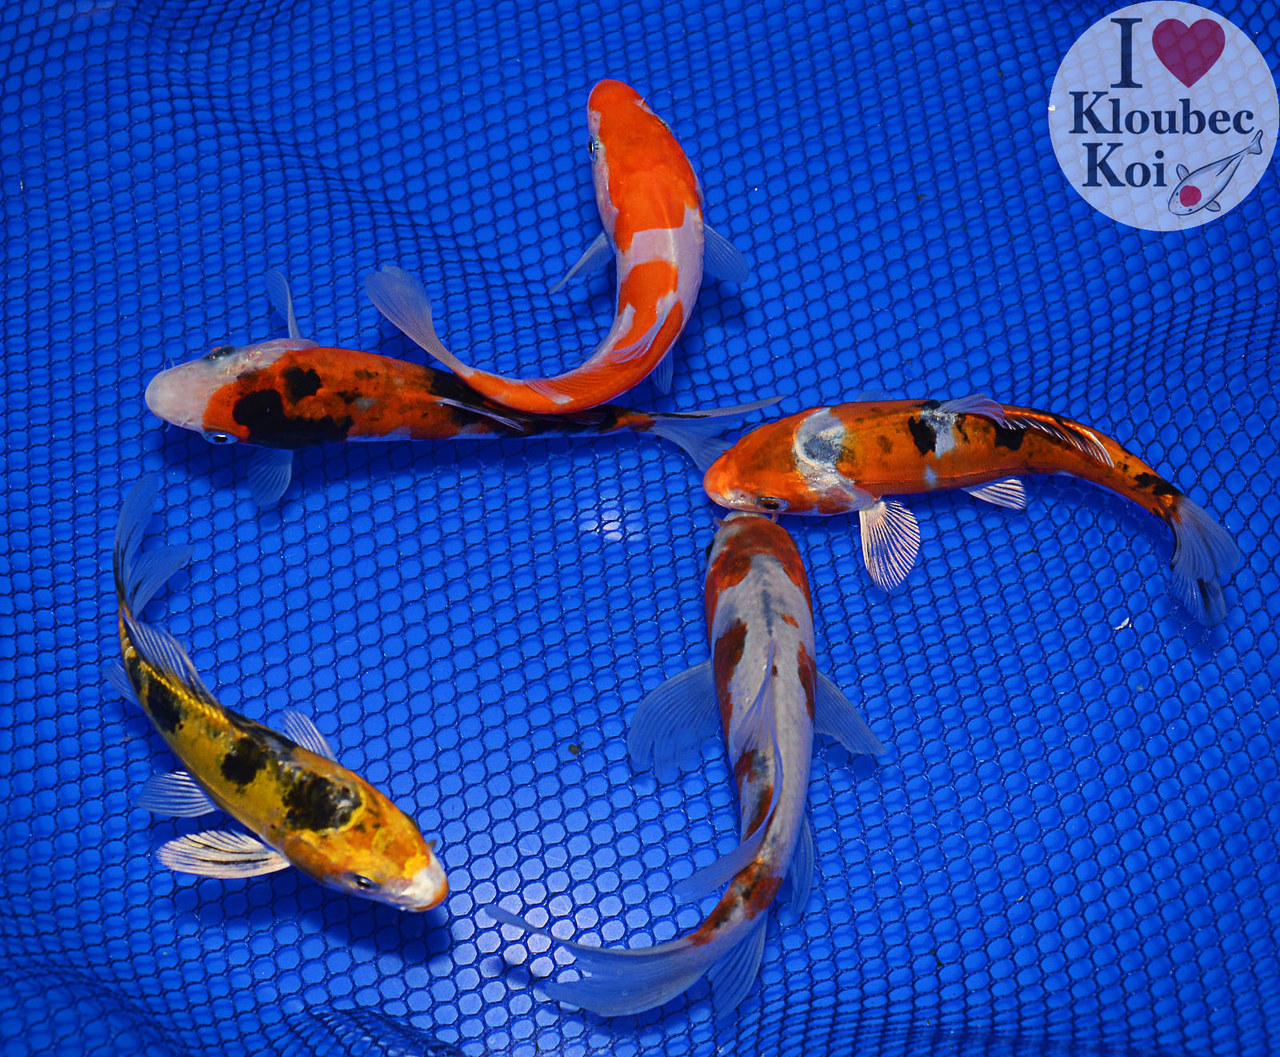 4 5 pond pack live koi fish kloubec koi 1293h6 ebay for What fish can live with koi